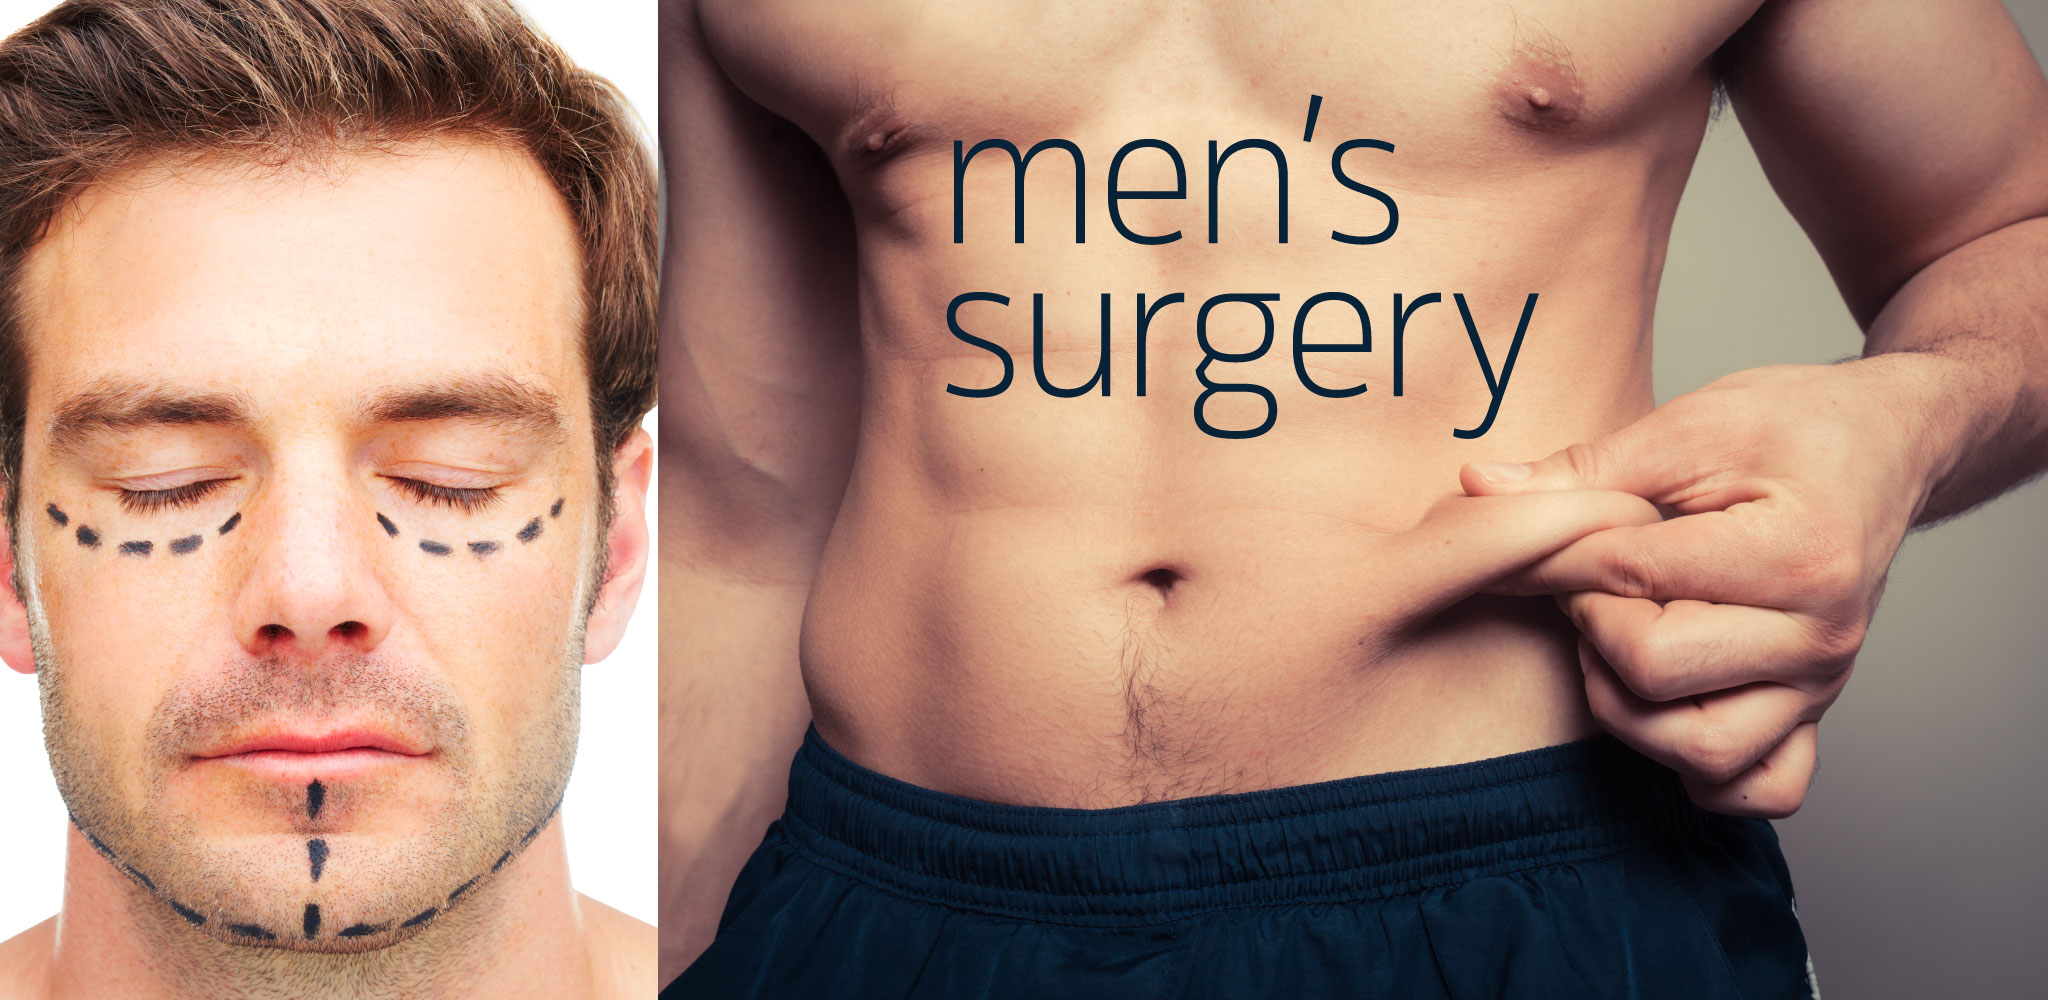 male breast reduction liposuction men's tummy tuck abdominoplasty blepharoplasty [eyelid surgery] brow lift double chin removal: laser double chin removal: kybella facelift men's mini facelift arm lift thigh lift body lift otoplasty [ear pinning]